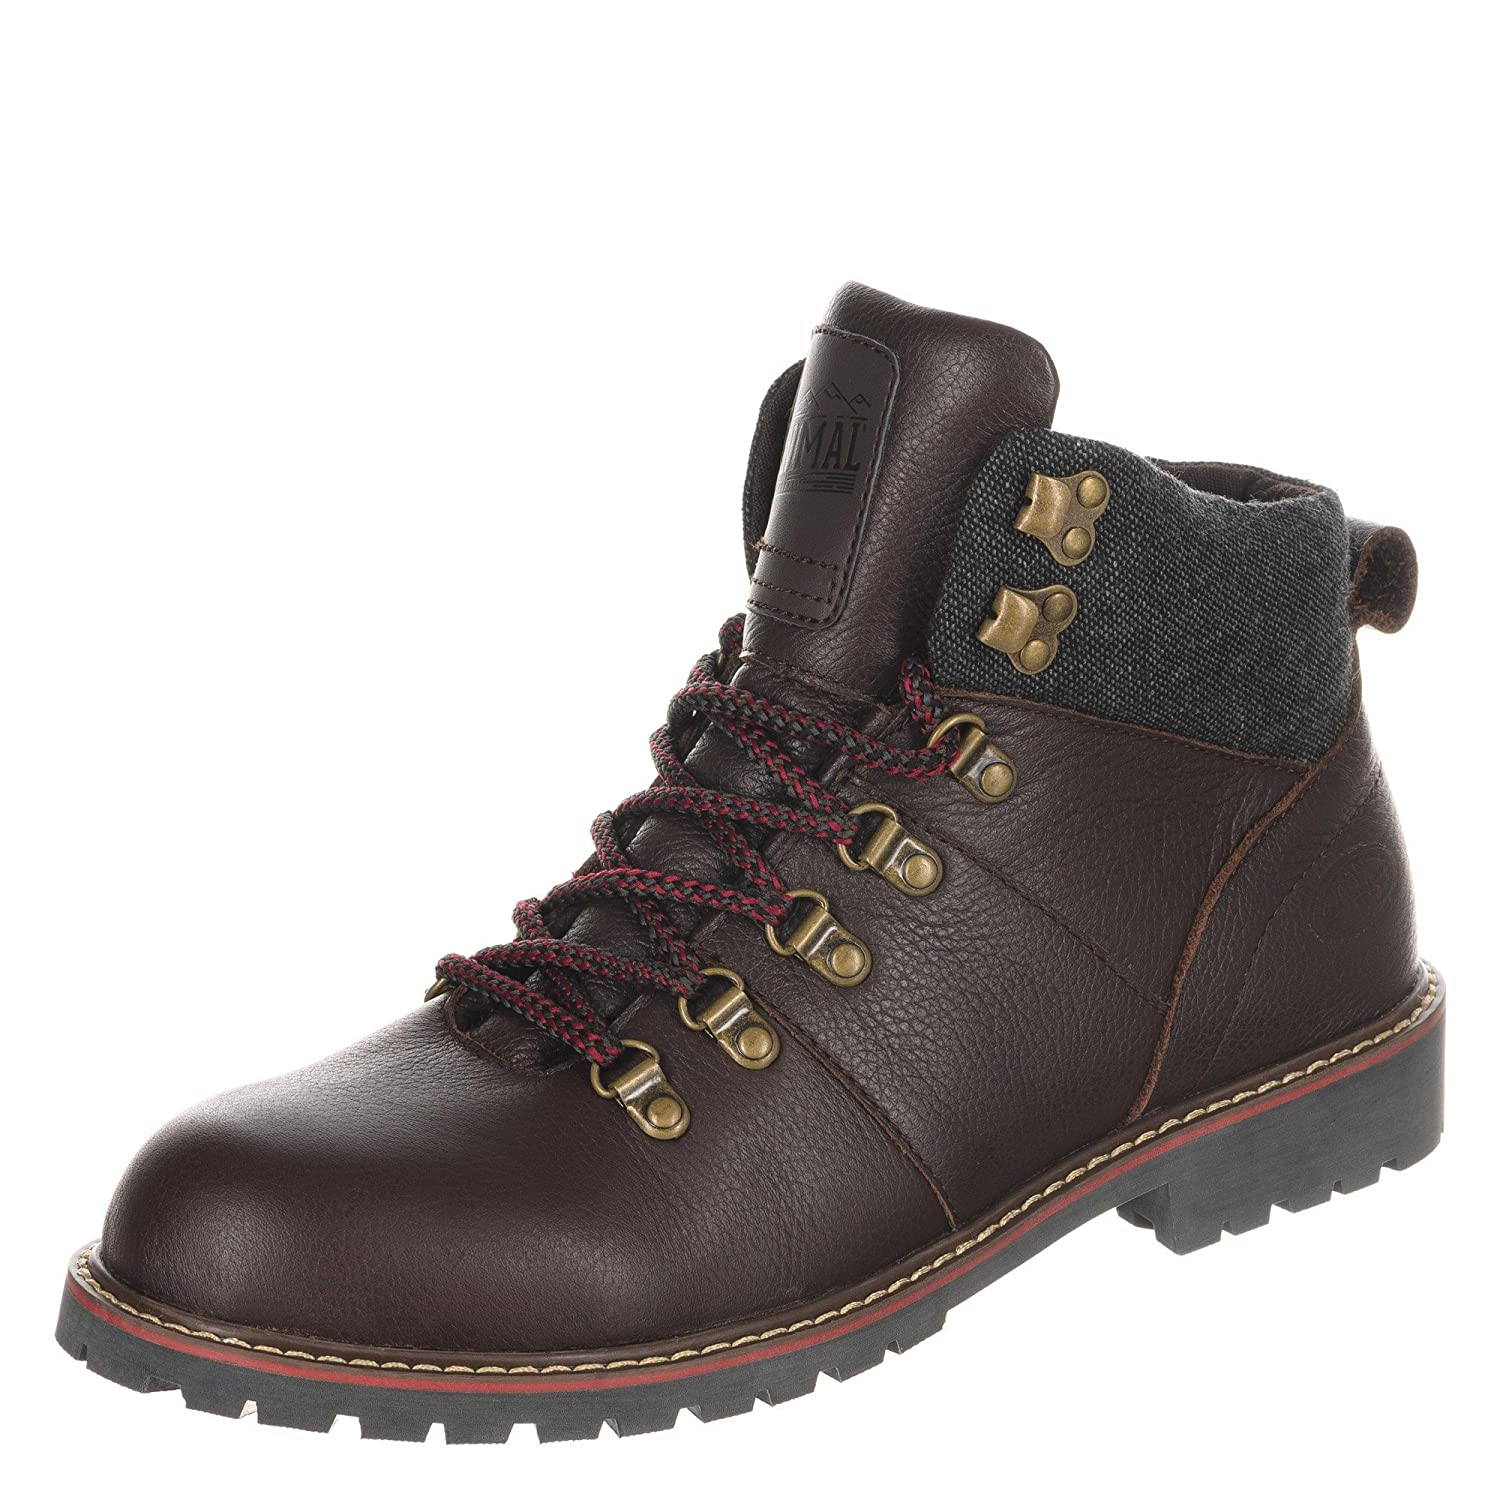 Animal Mens Heathe Leather Hiking Boots 60%OFF